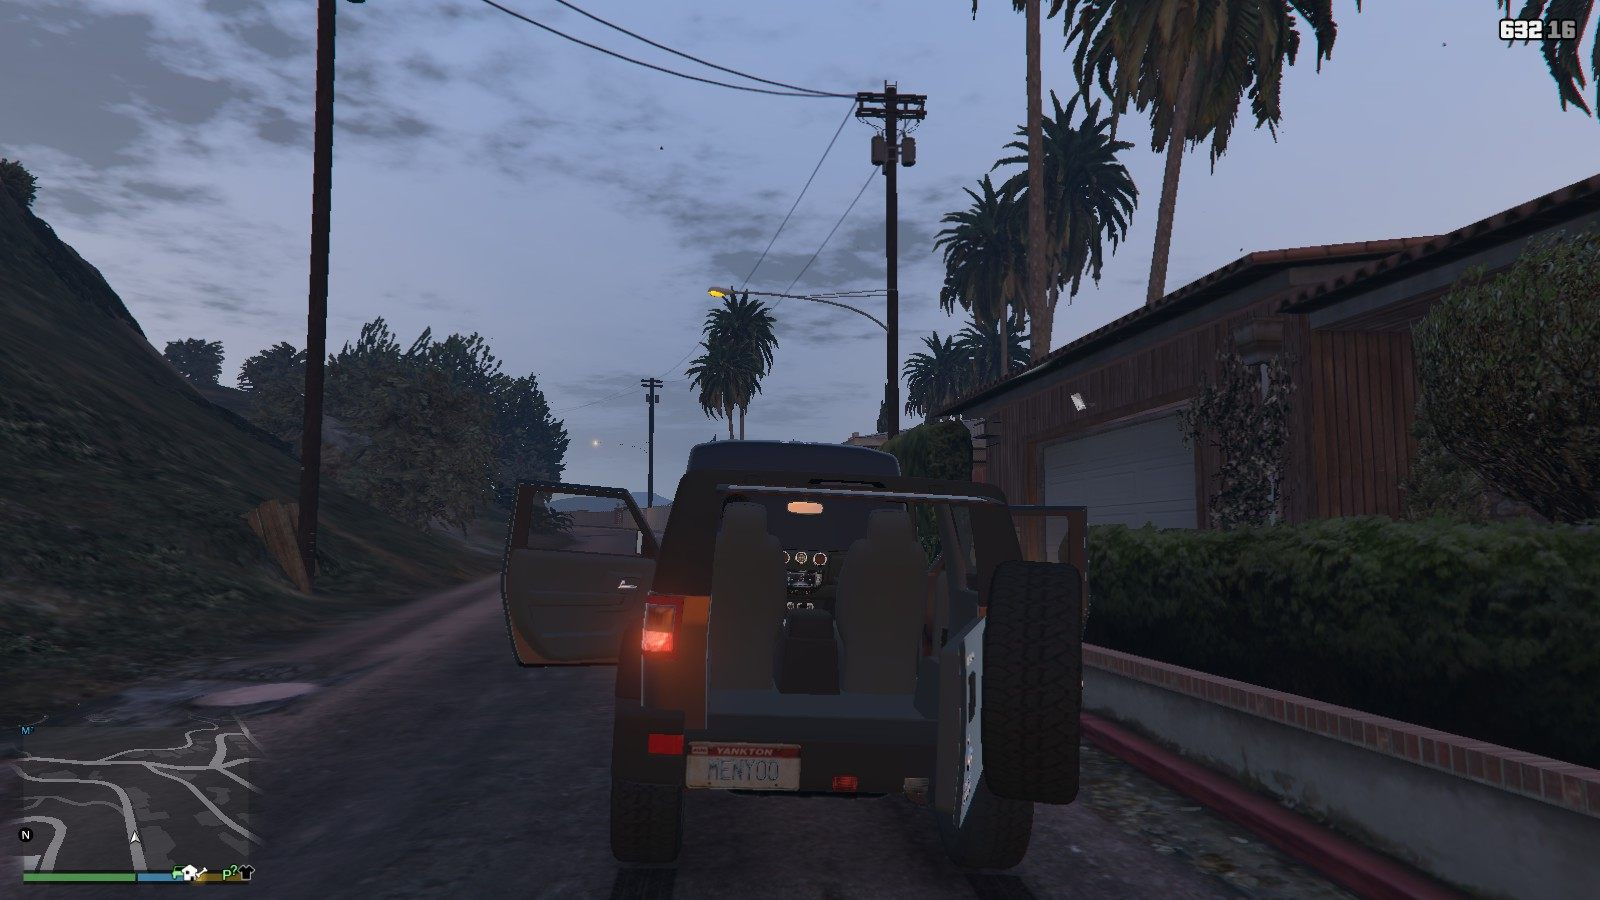 BJ40 GTA5 Mods (8)